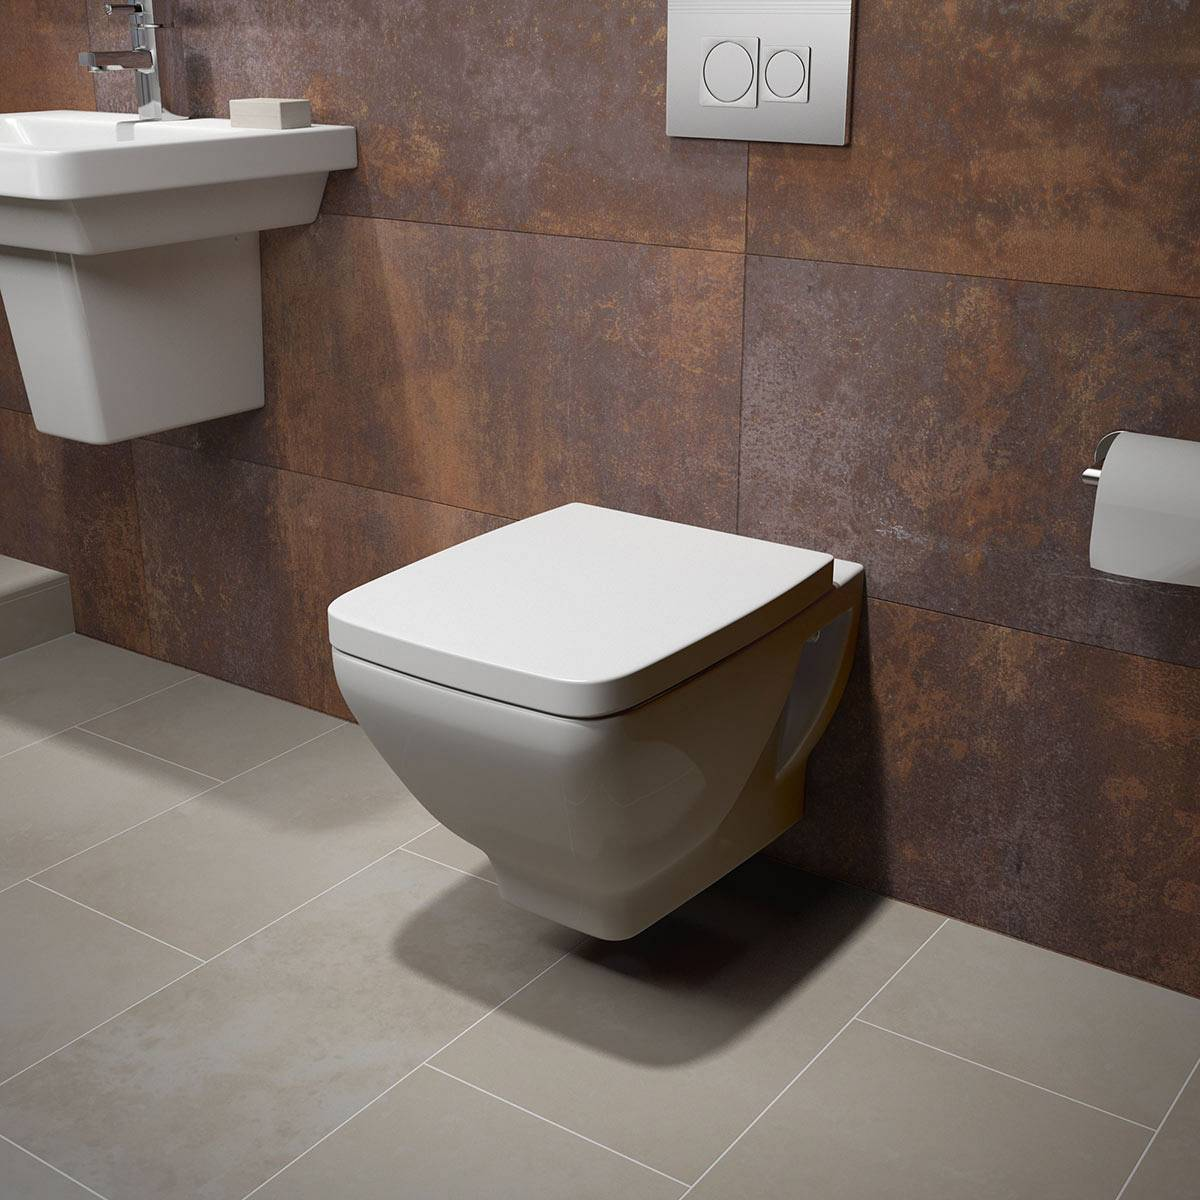 Hangende Wc 5 Reasons To Buy A Wall Hung Toilet Victoriaplum